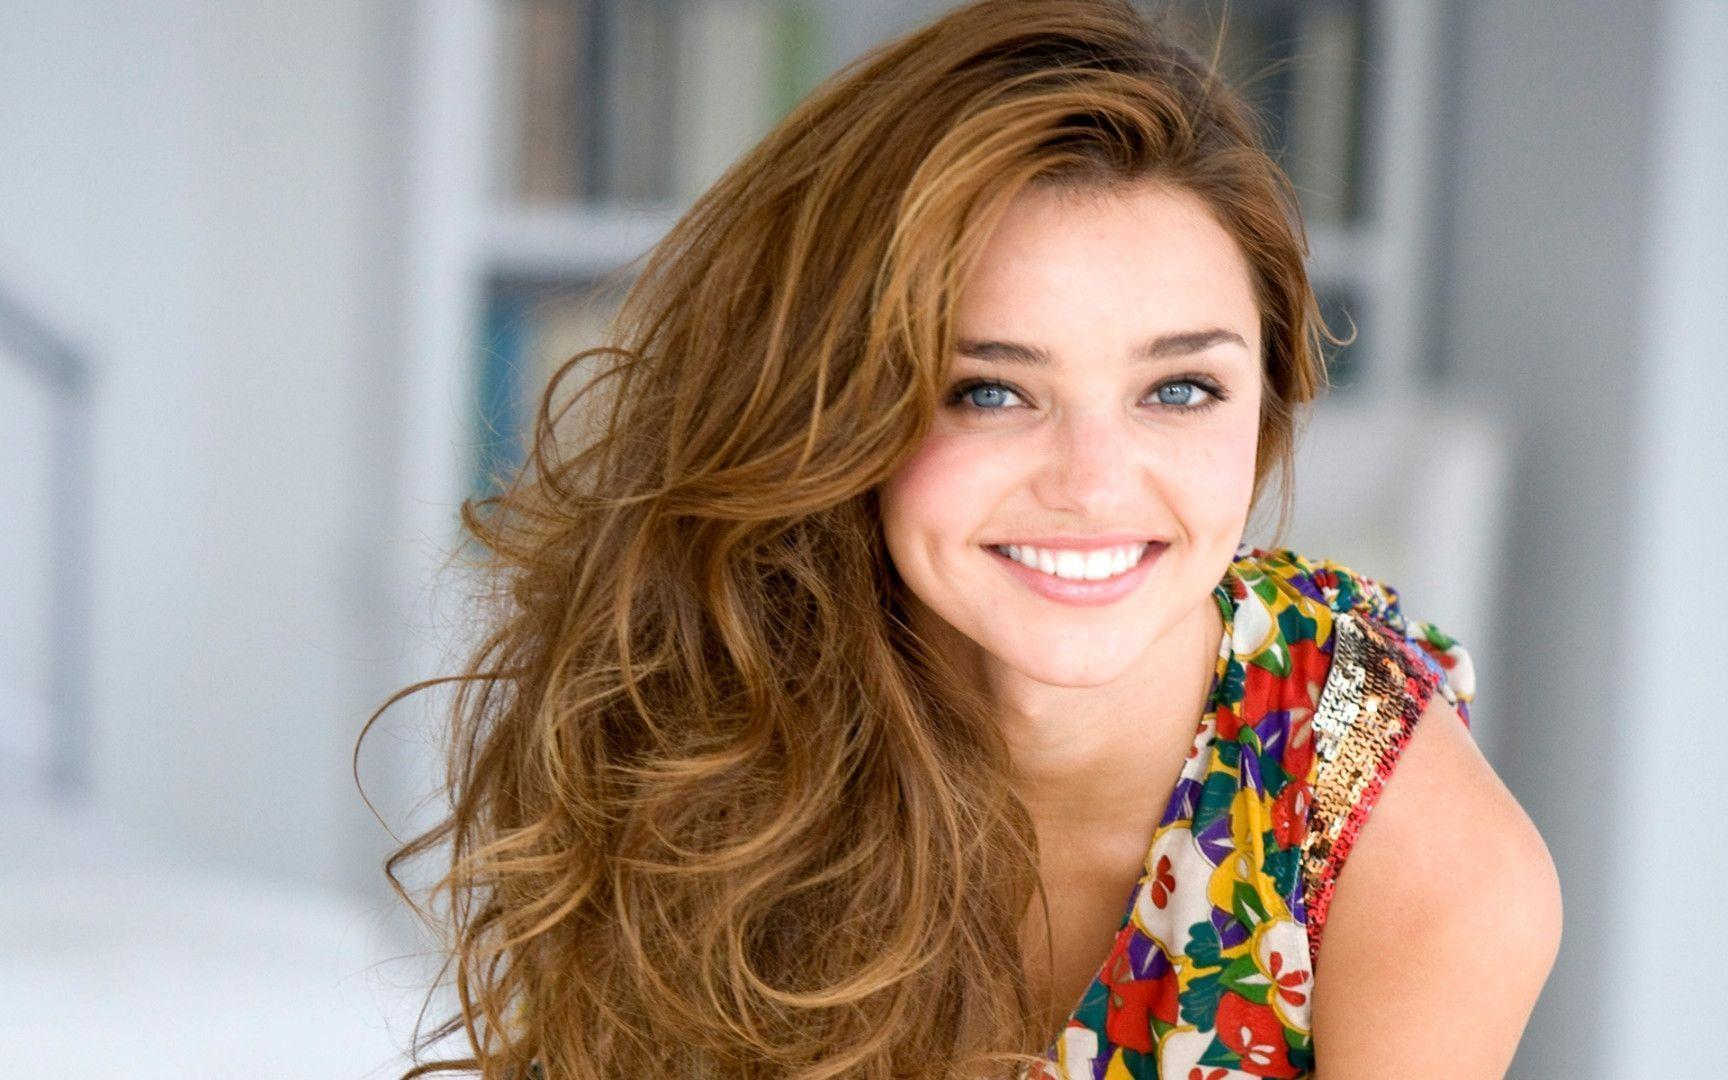 Miranda Kerr Wallpaper: Cute Miranda Kerr Hd Wallpapers